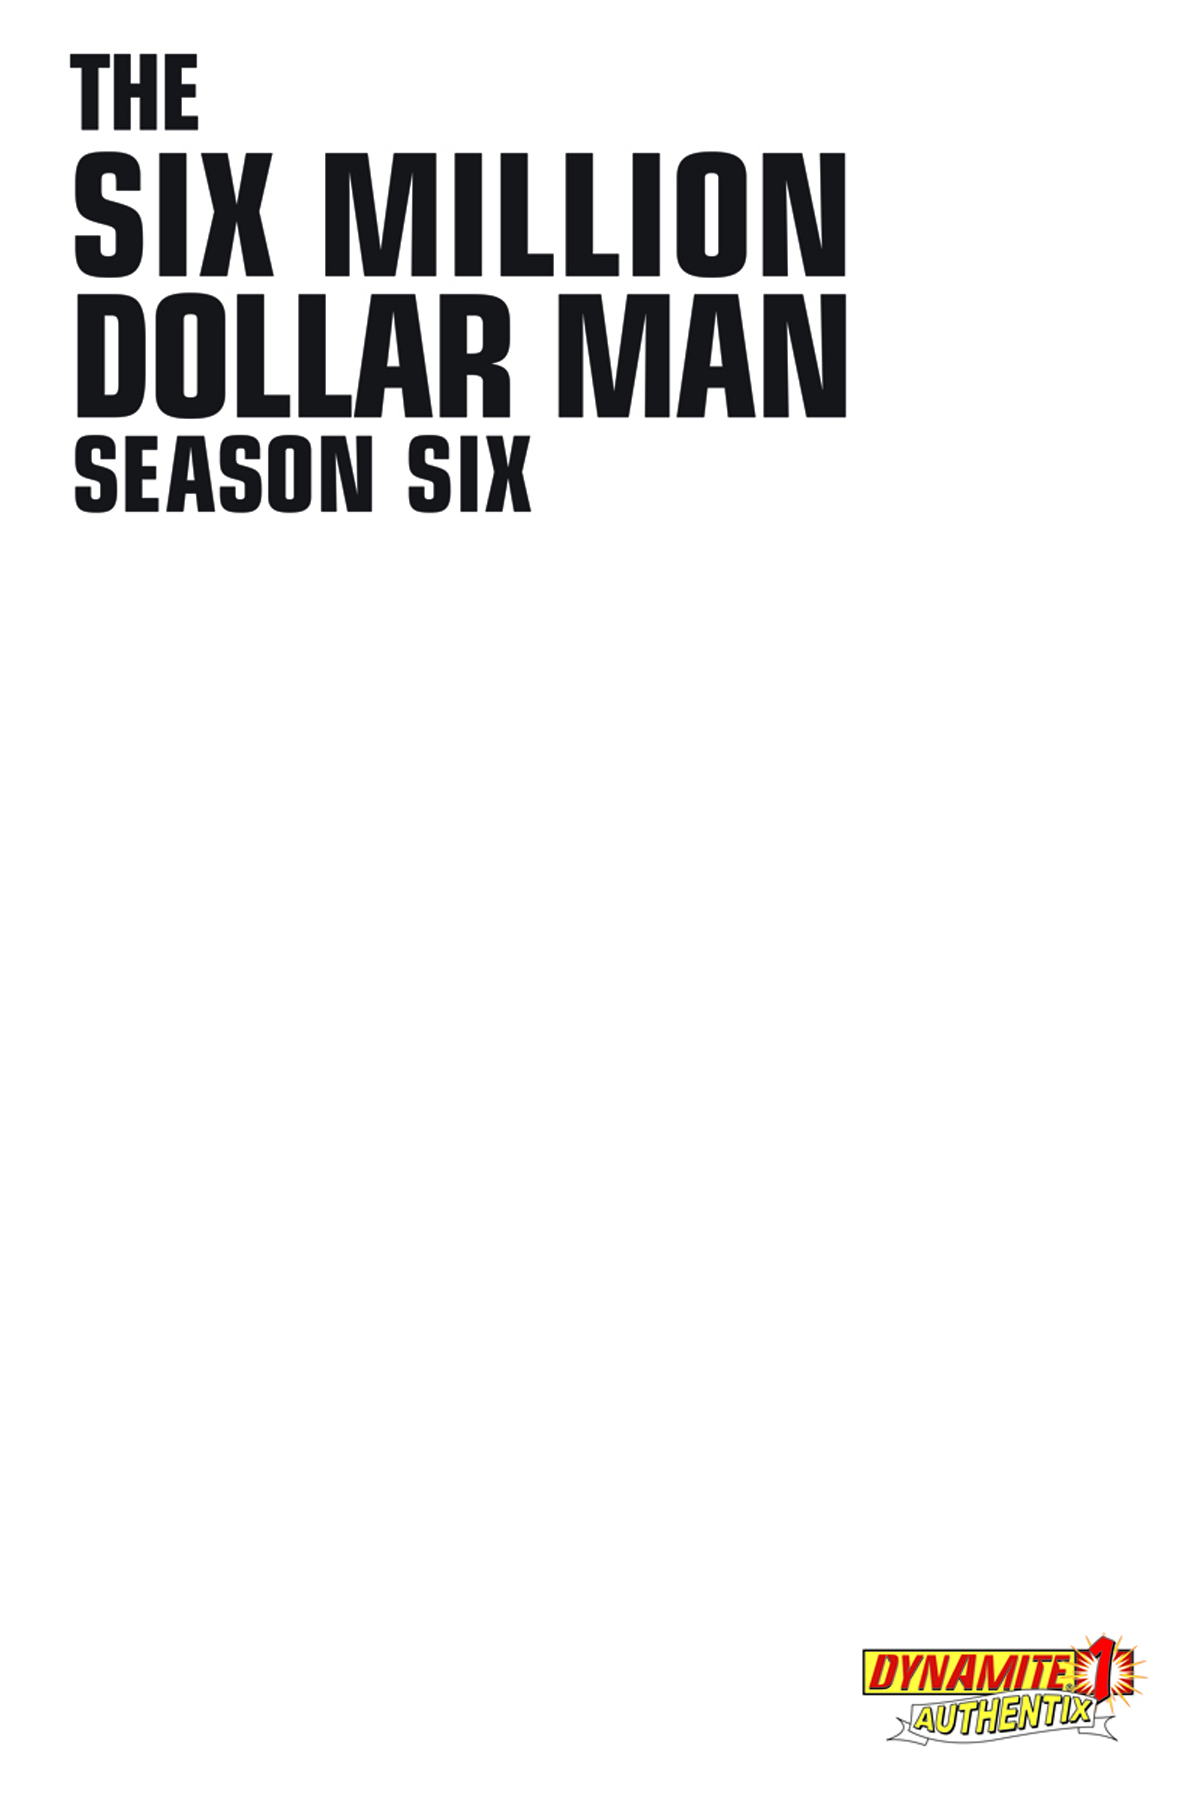 SIX MILLION DOLLAR MAN SEASON 6 #1 BLANK AUTHENTIX VAR CVR